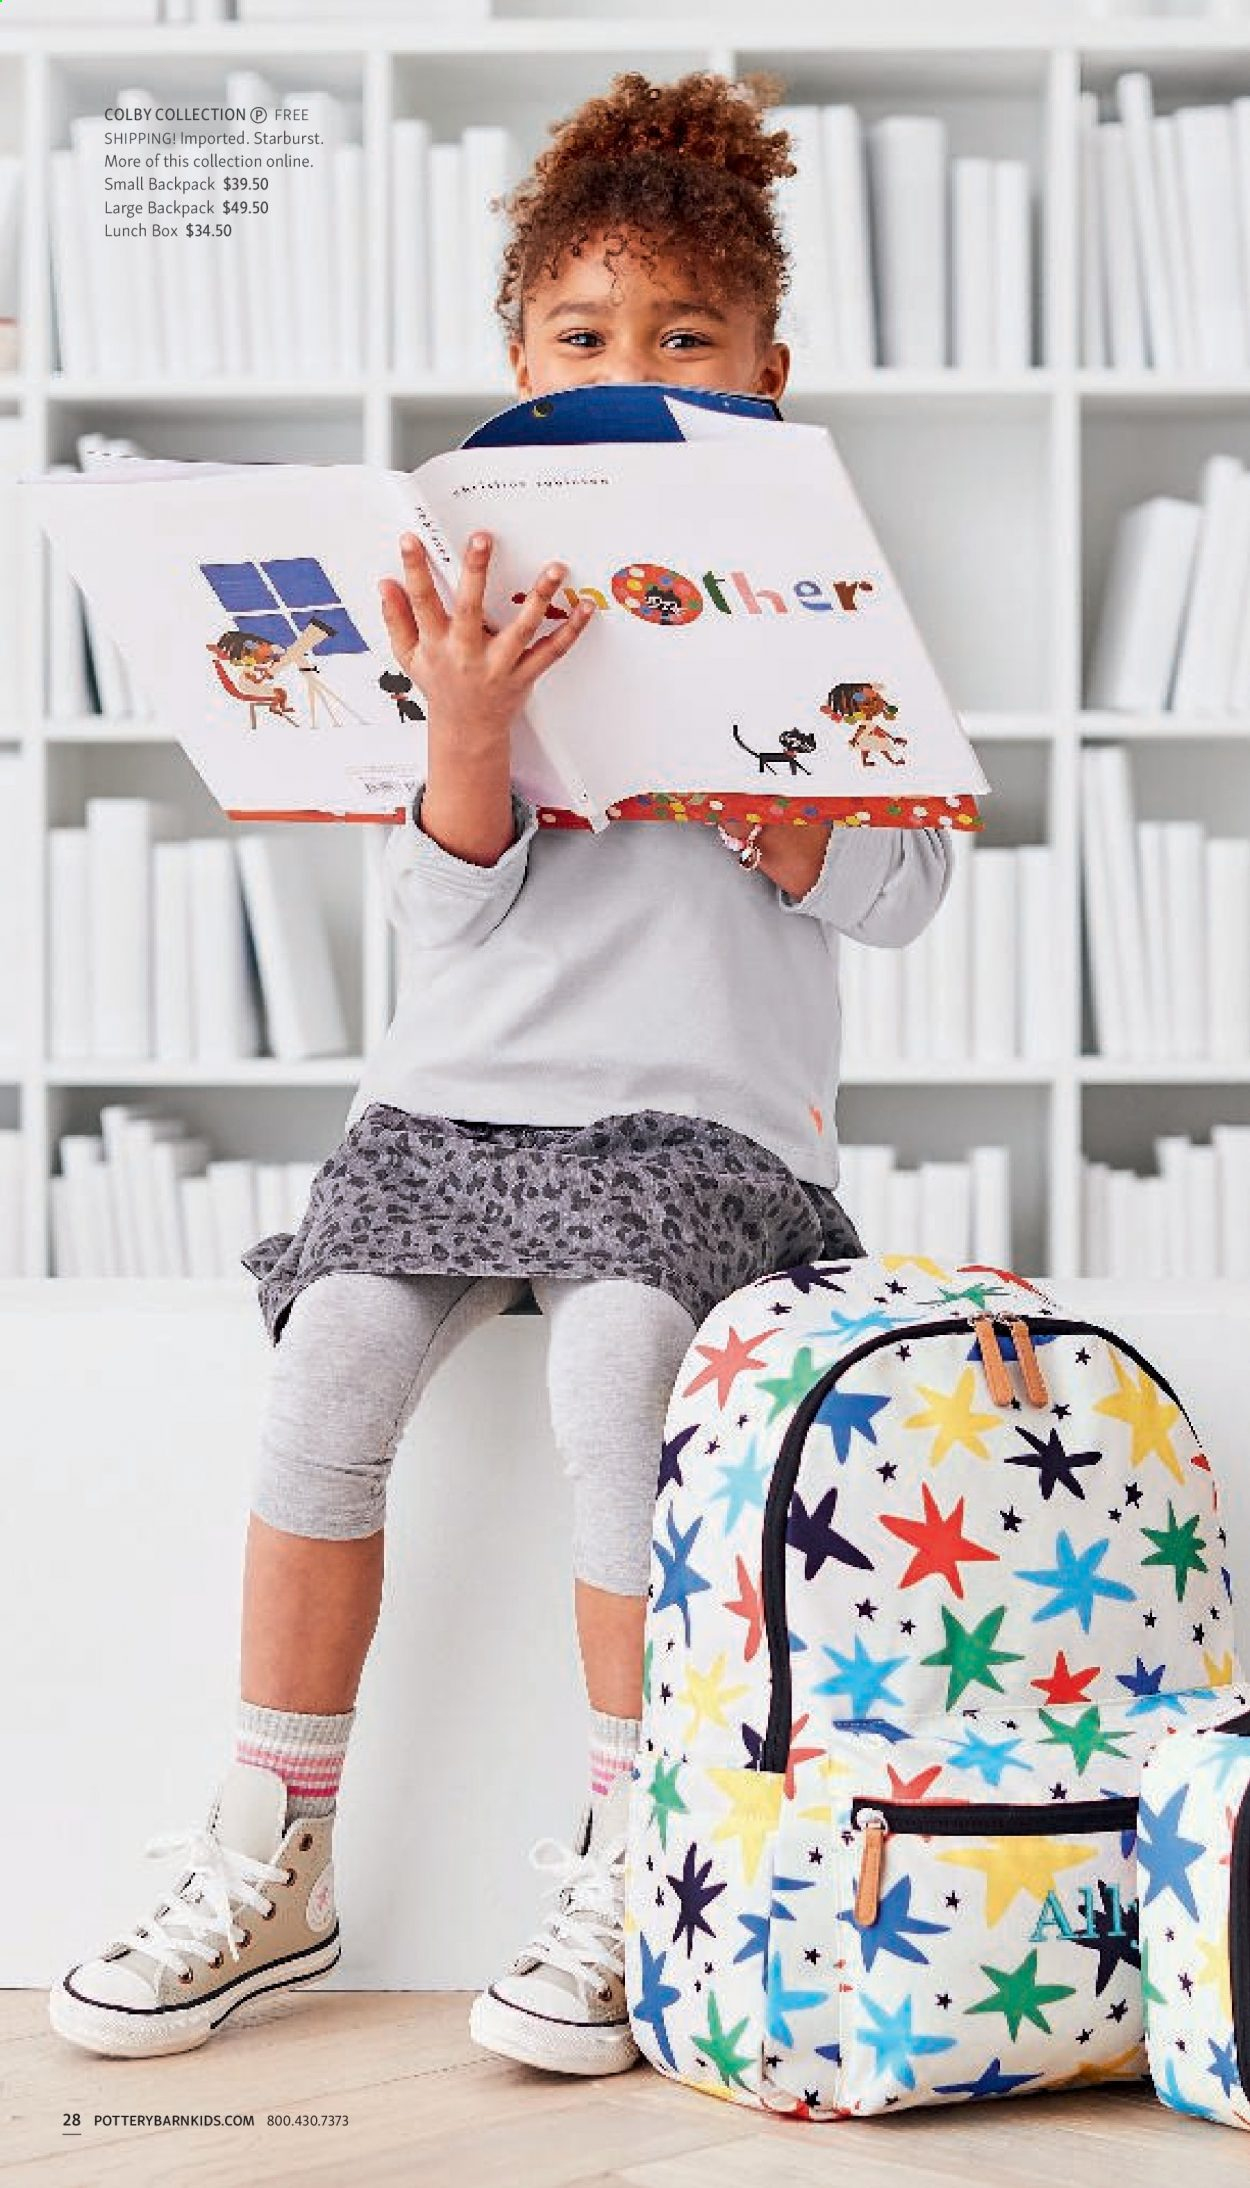 Pottery Barn Ad Kids - Back to School 2021 - Page 28